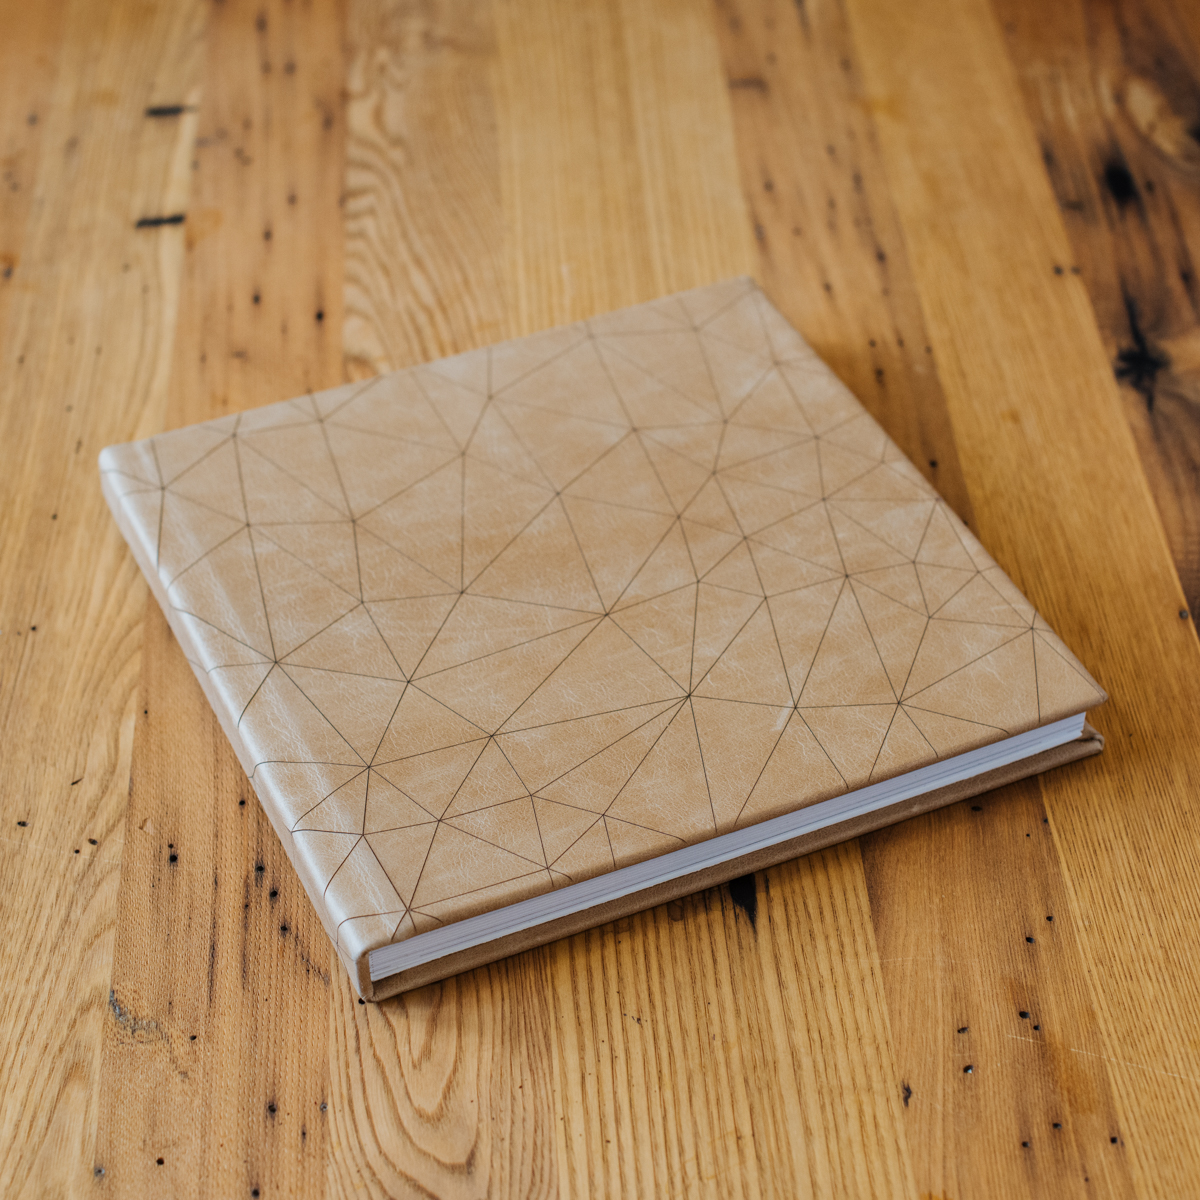 Signature Album with Leather Cover